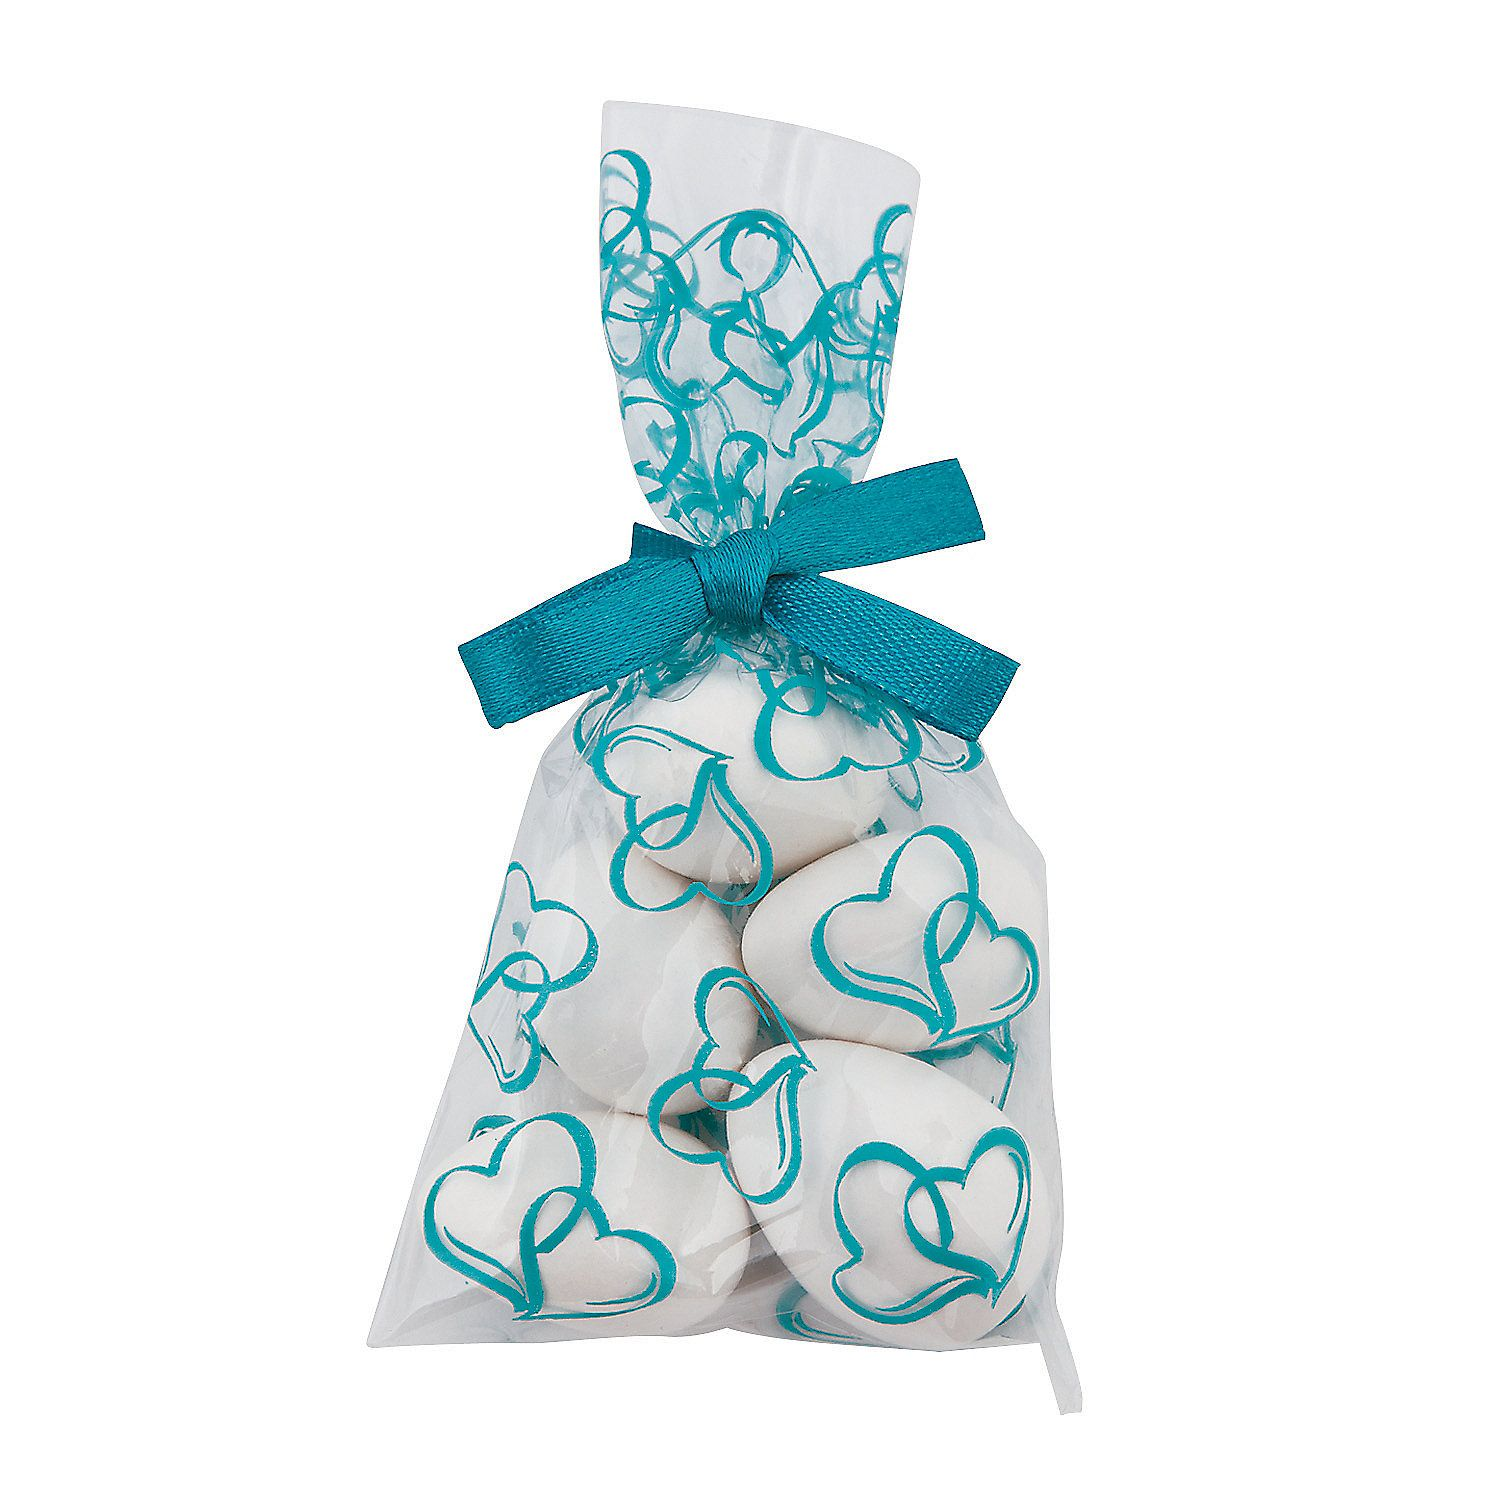 Mini Turquoise Two Hearts Cellophane Bags | Cellophane bags, Wedding ...